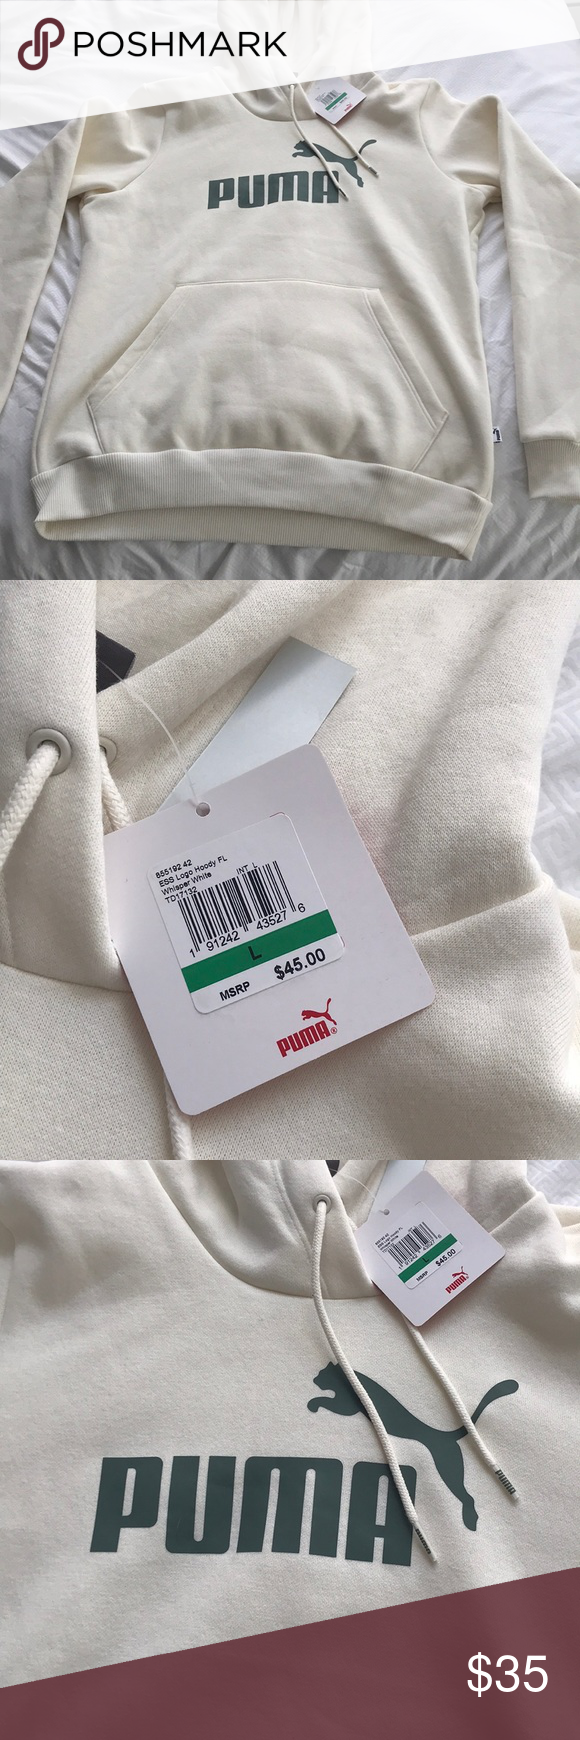 Puma Sweatshirt Cream White With Army Green Puma Lettering And Logo Brand New Never Worn With Tag Fitted Puma Puma Sweatshirt Sweatshirts Sweatshirts Hoodie [ 1740 x 580 Pixel ]